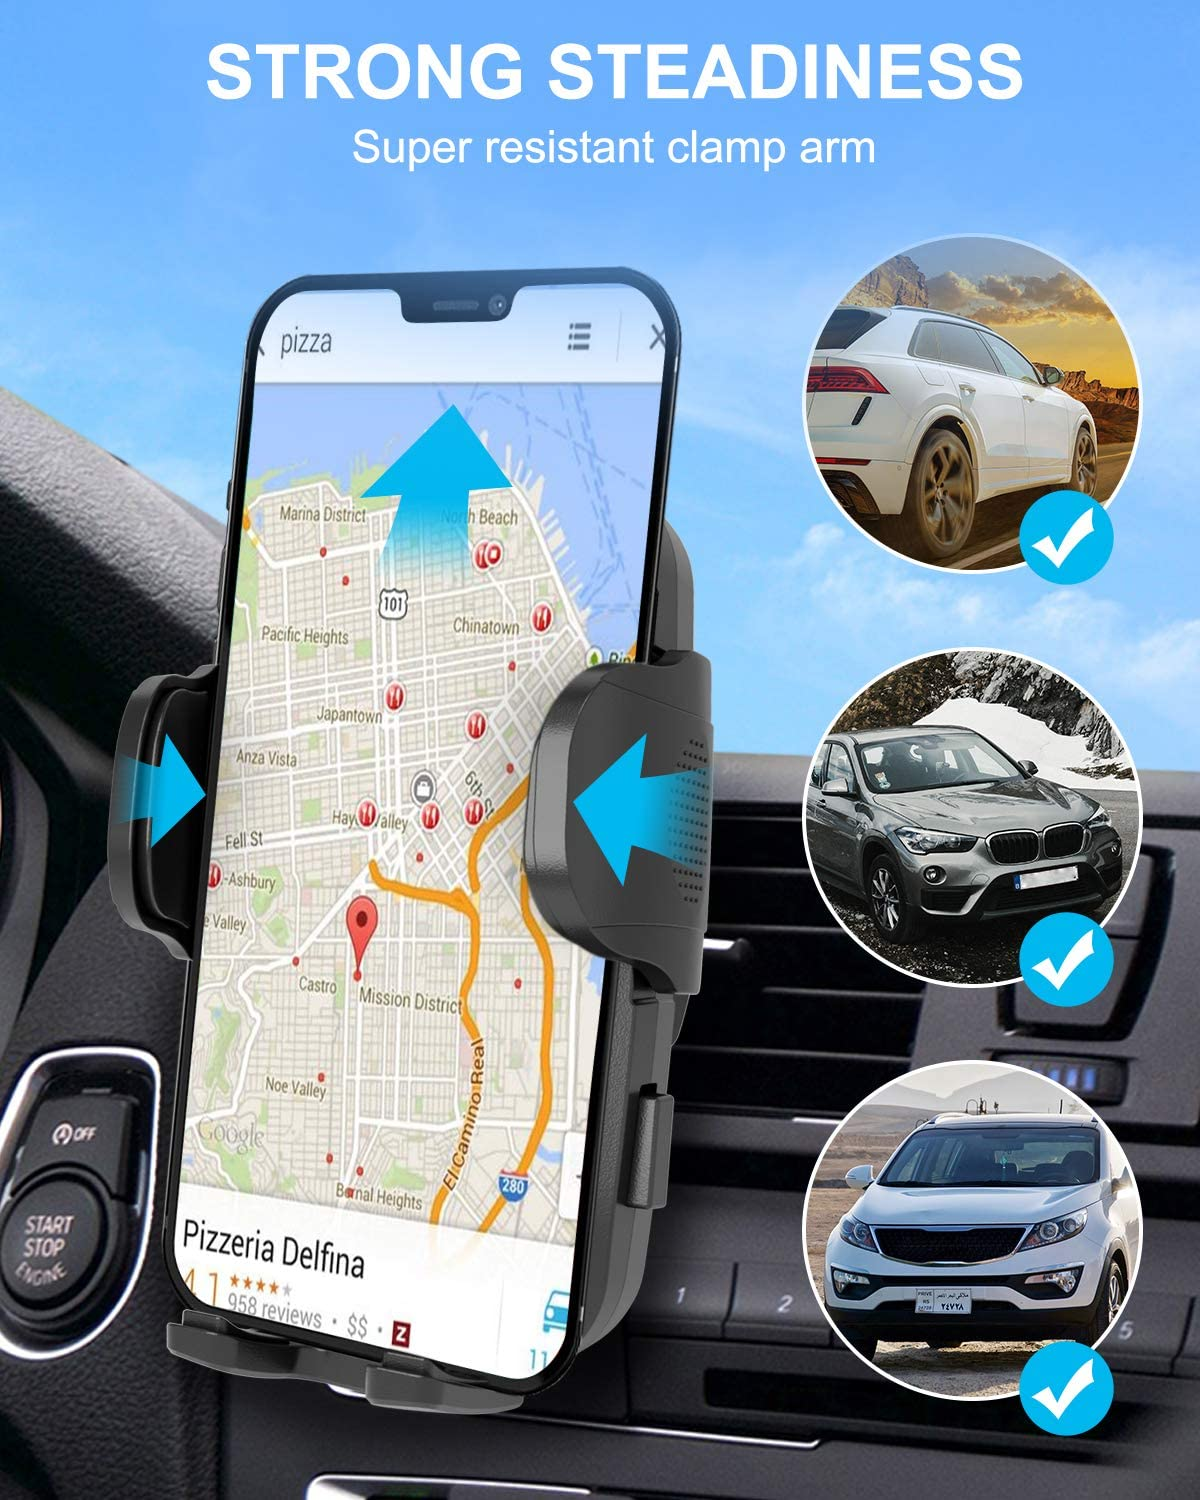 ANDOLO Car Phone Mount Air Vent Thick Case /& Big Phones Friendly Universal Hands-Free Phone Holder for Car Anti-Shake Stabilizer Adjustable Clip Cell Phone Holder Compatible with All Mobile Phones